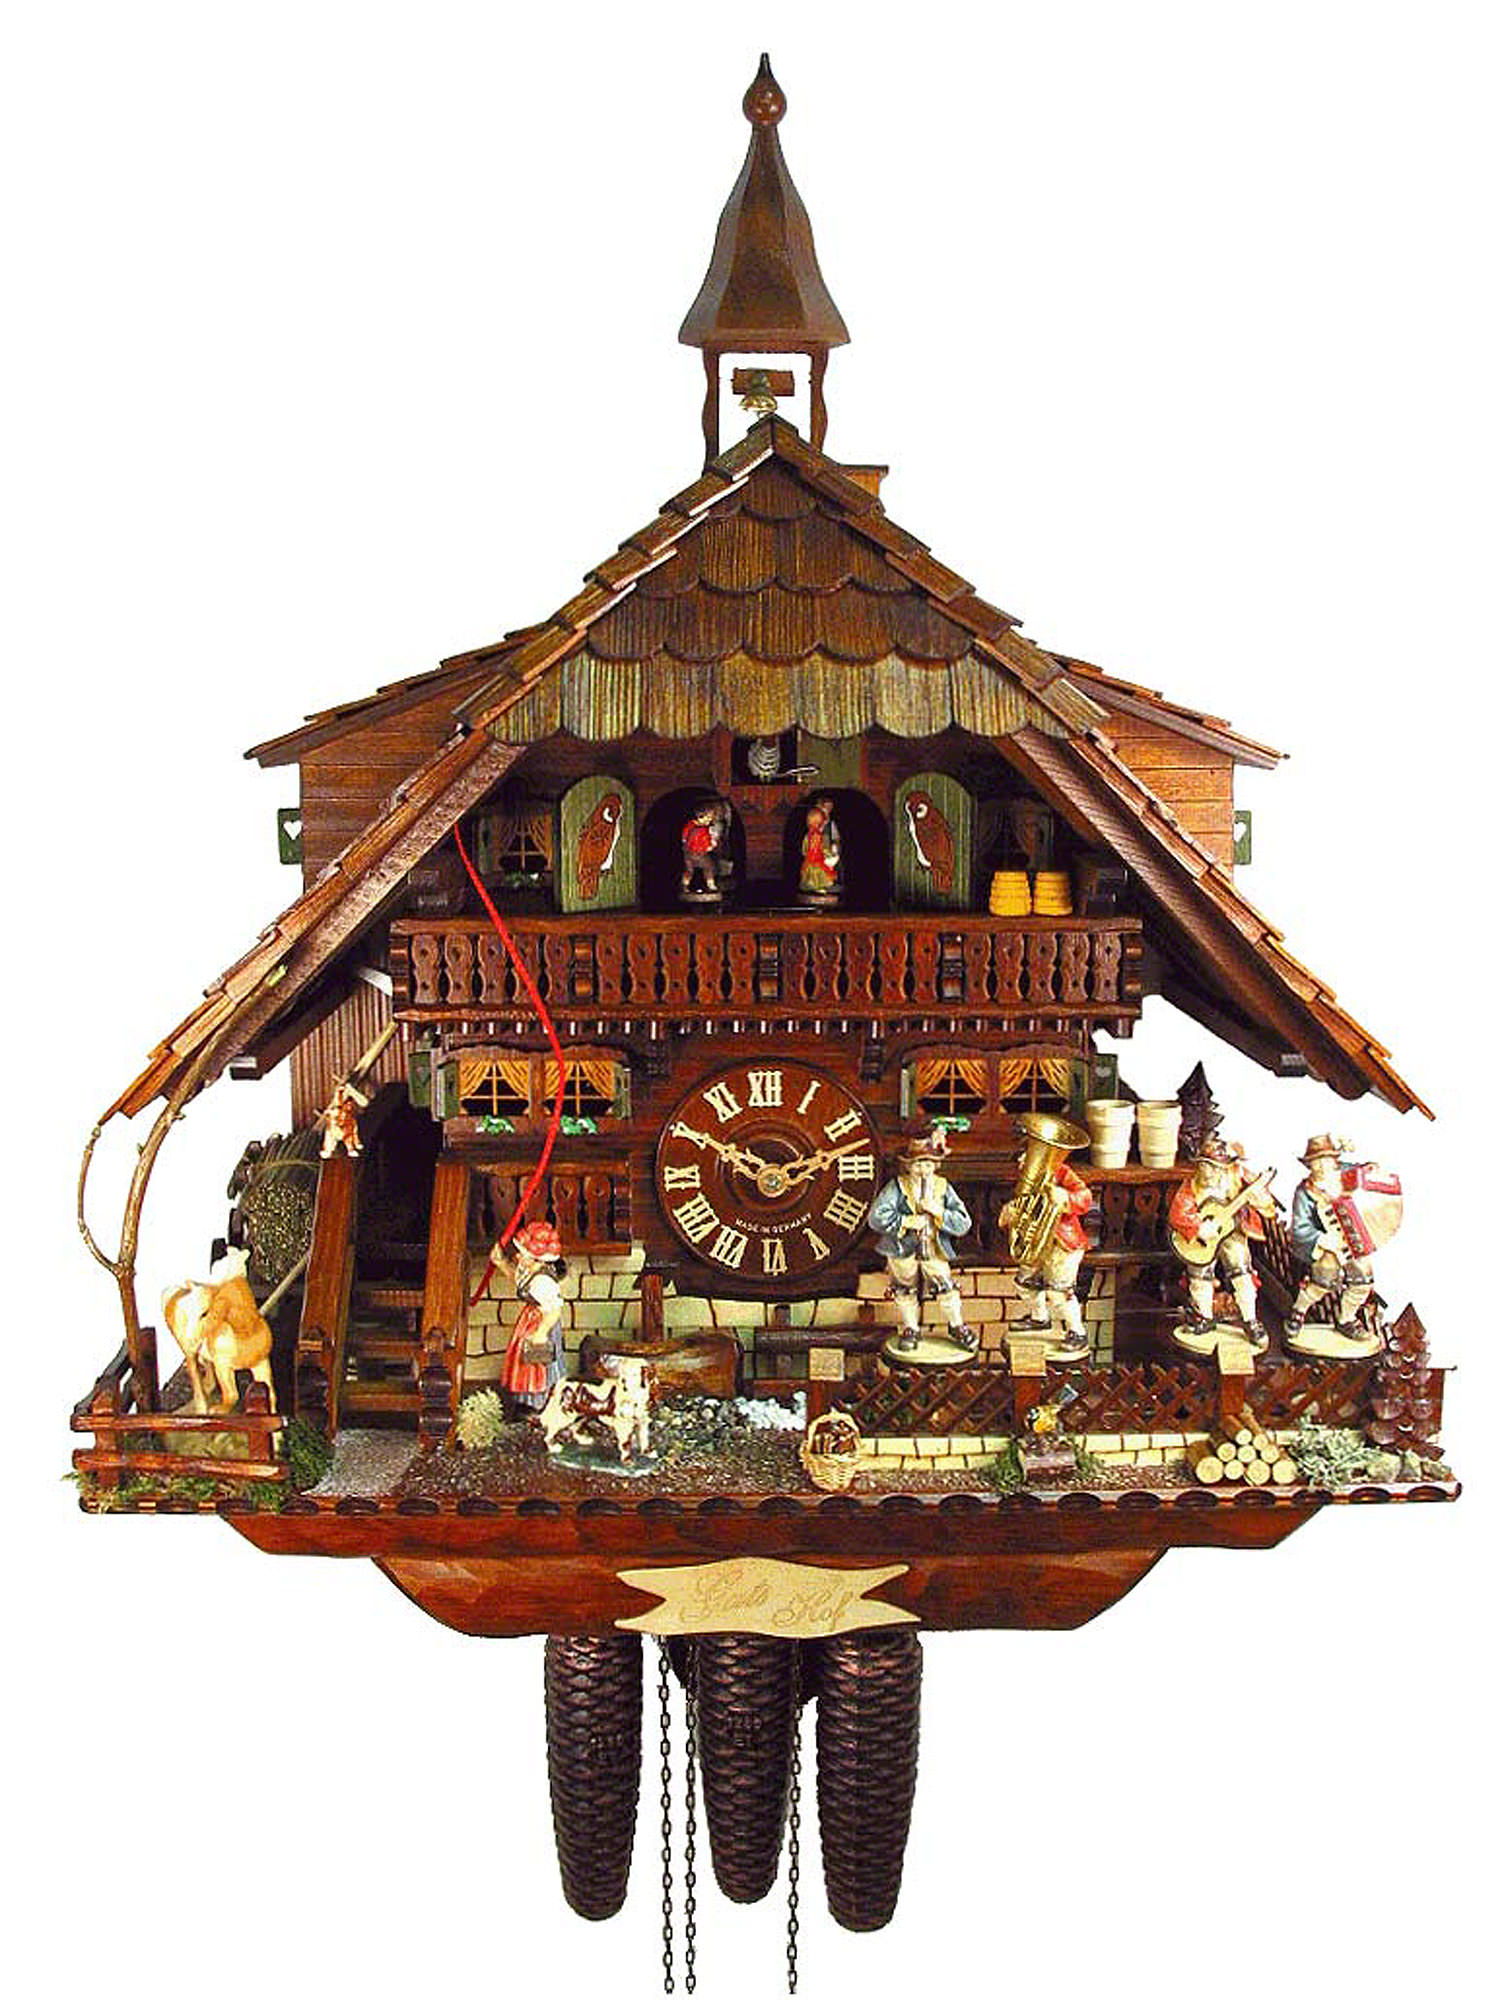 charming cuckoo clock in brown home design made of wood with daily life scene for home accessories ideas